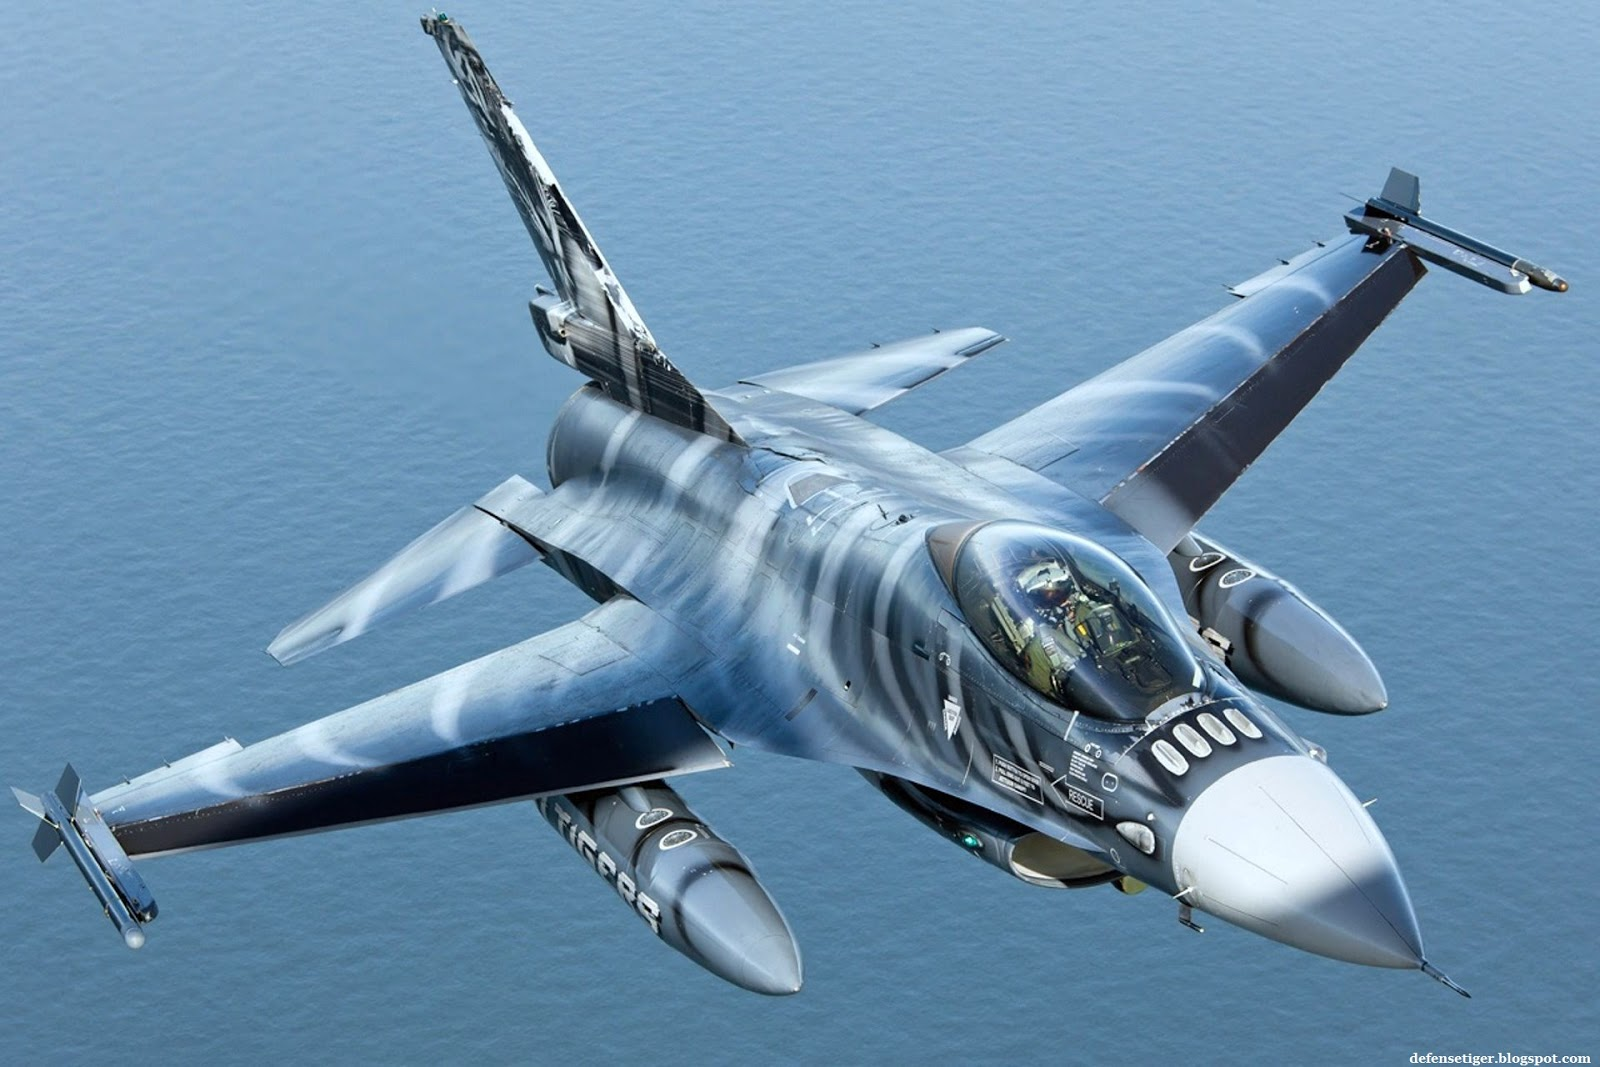 Defense Strategies: Some Classical Photos Of The F-16